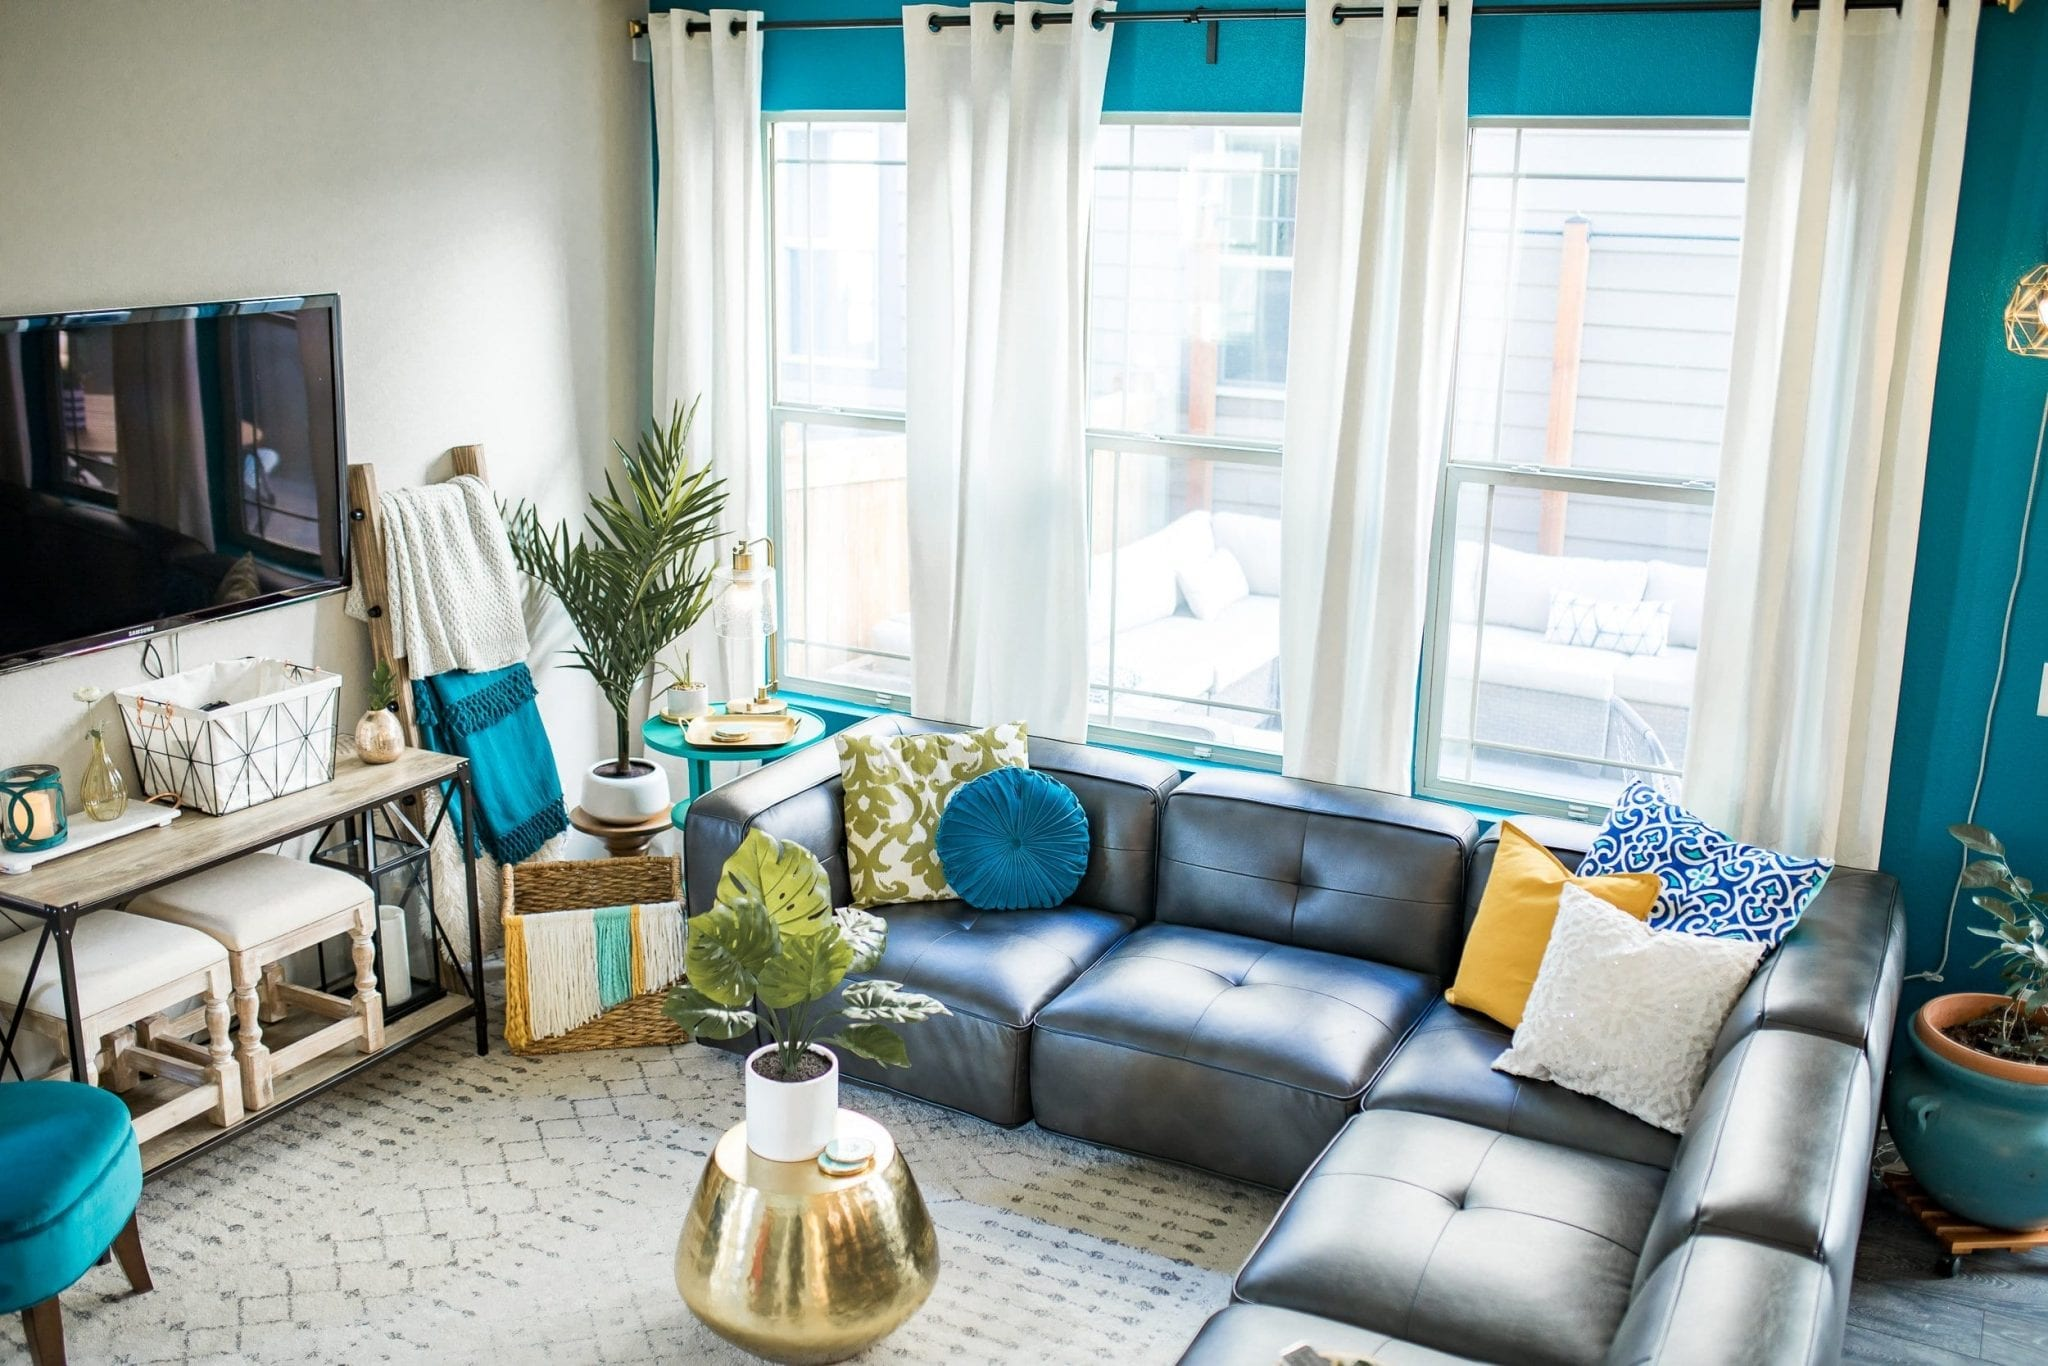 living room decor | Living Room Ideas | living room decor ideas | living room designs | living room paint color ideas | living room refresh | Never Skip Brunch by Cara Newhart | #livingroom #home #decor #neverskipbrunch